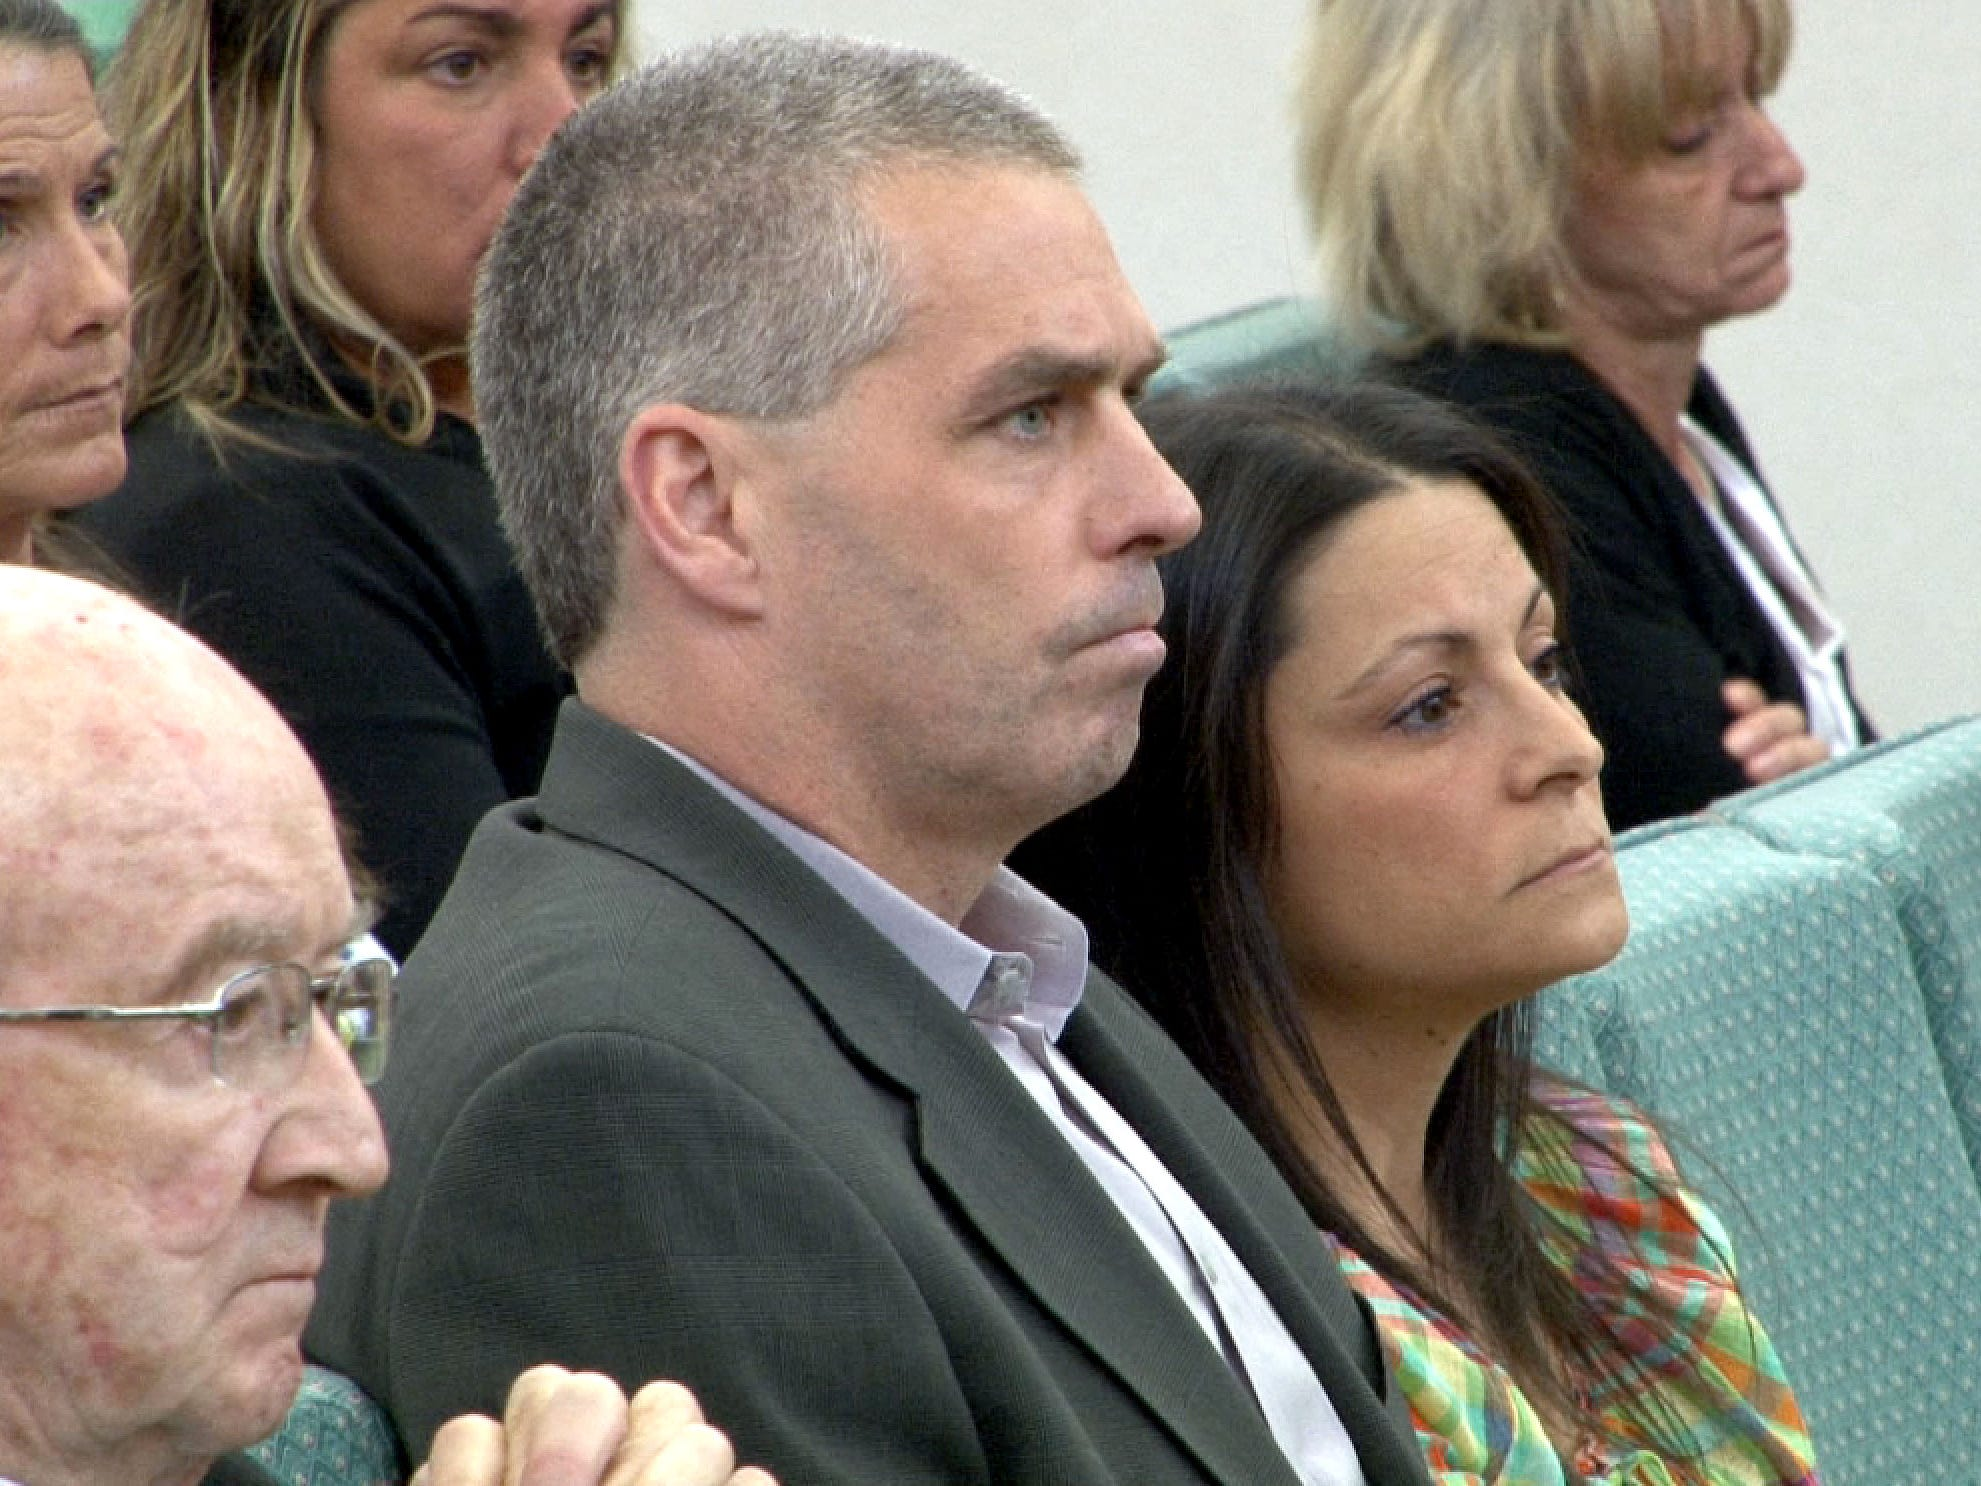 Former NJ Devils player and current Pt Pleasant-Manasquan High School hockey coach Jim Dowd sits with his wife Lisa in Wall Township Municipal Court Wednesday, May 20, 2015. He was found not guilty on a complaint charged that Dowd kicked one of his players in the back during a hockey game. ASB 0521 Jim Dowd DOWDVERDICT0520B WALL TOWNSHIP, NJ STAFF PHOTO BY THOMAS P. COSTELLO